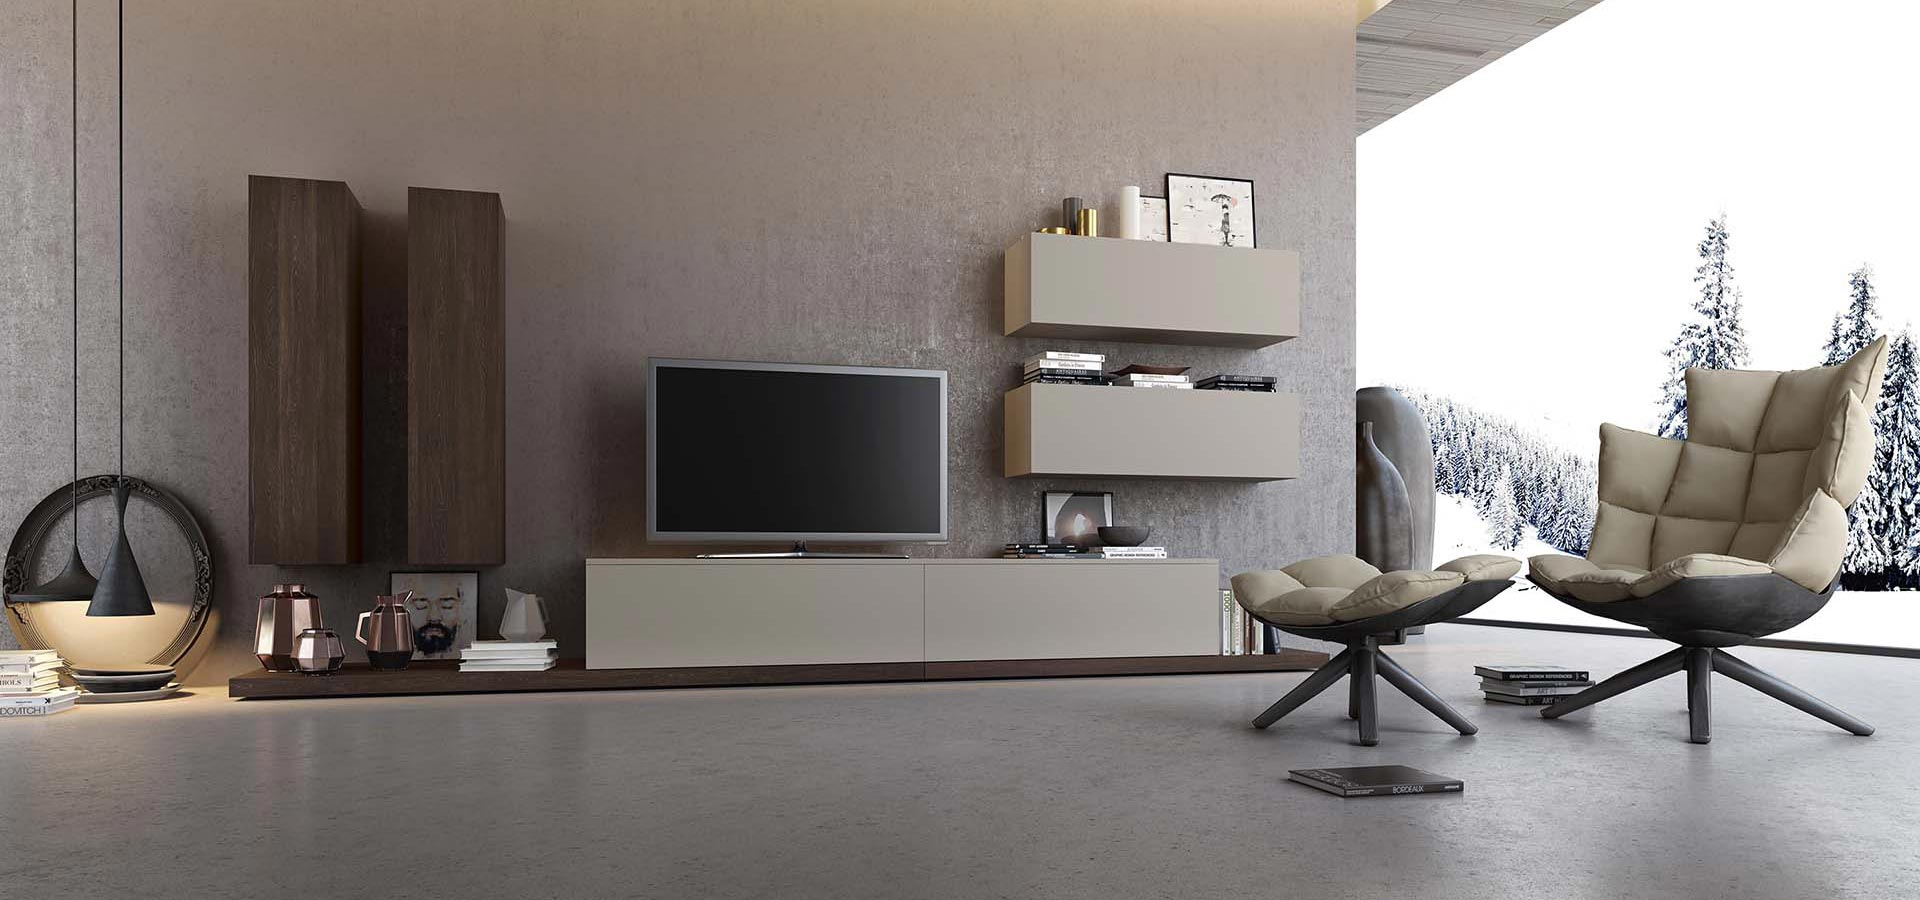 Kali 4 living room tv stand arredo3 for Living salon moderne